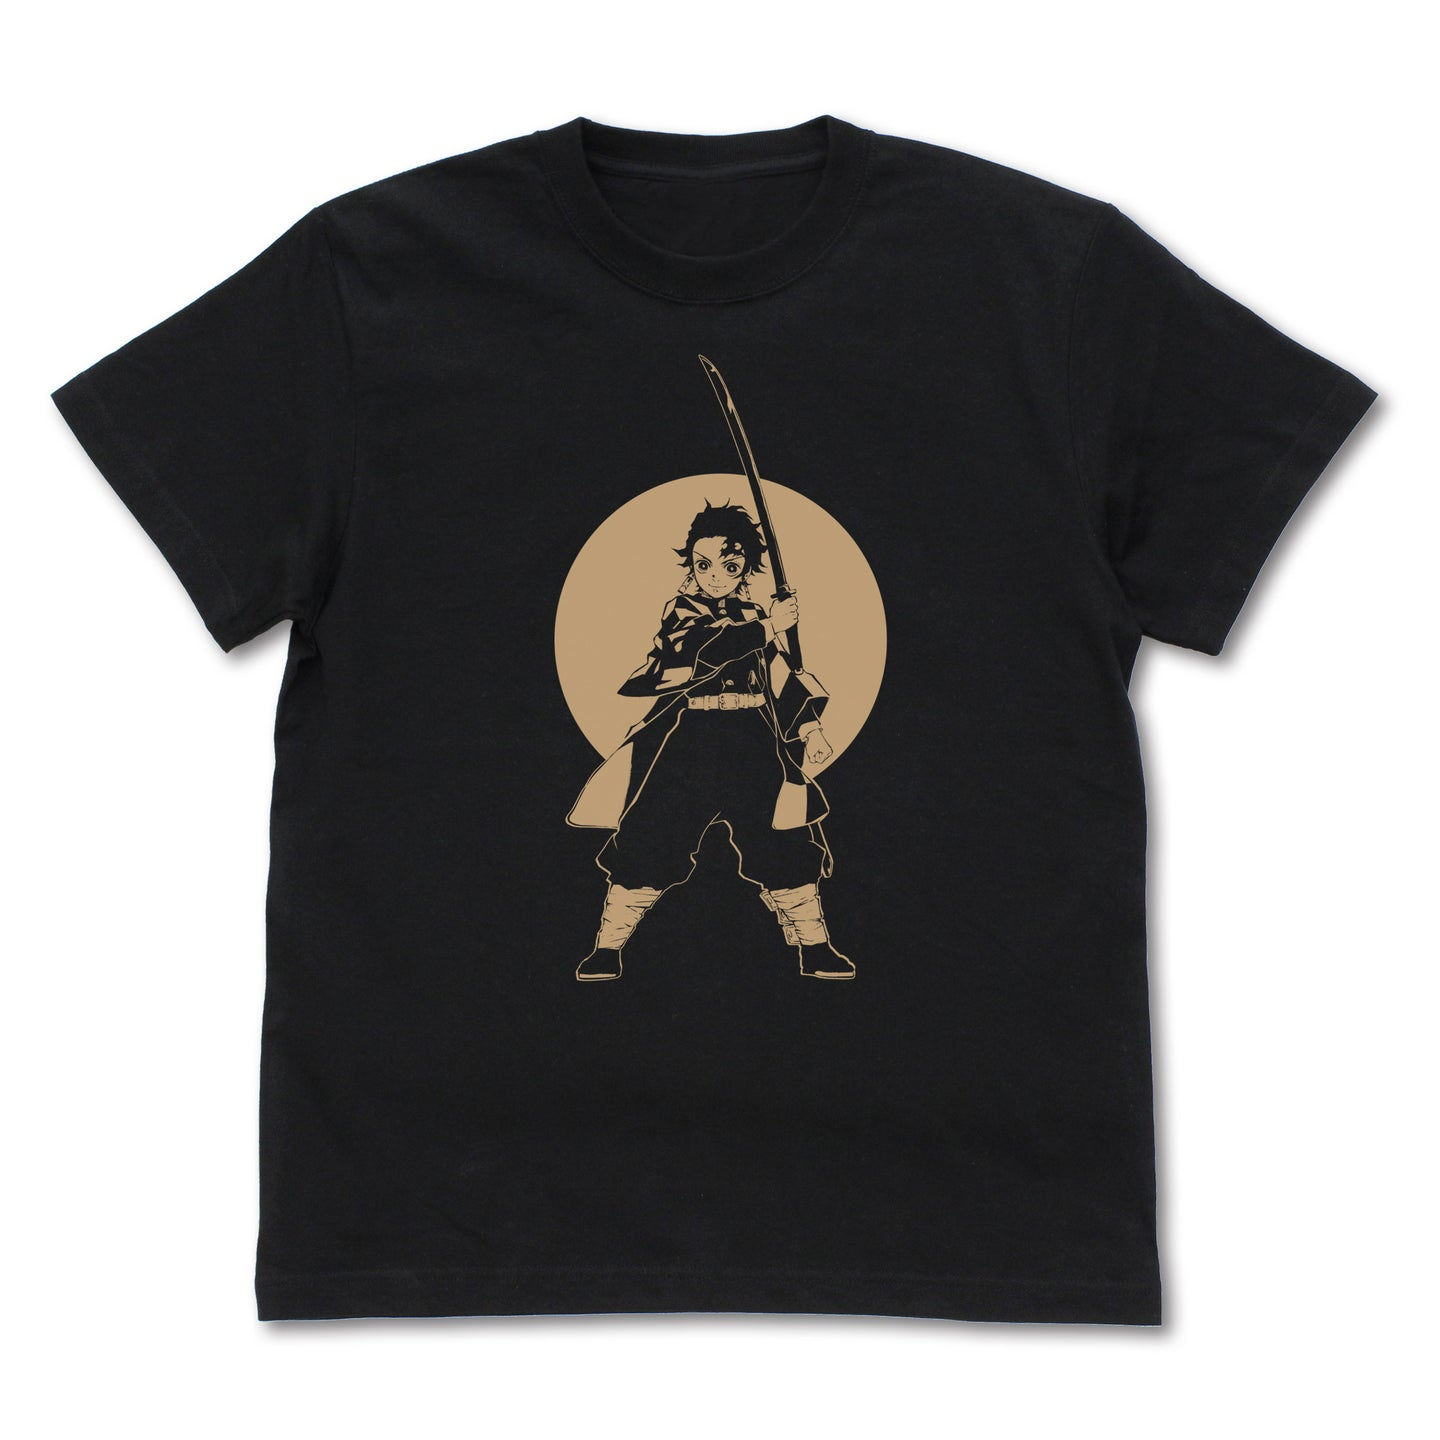 【Demon Slayer: Kimetsu no Yaiba】Tanjiro T-shirts 【COSPA】NEW ITEM